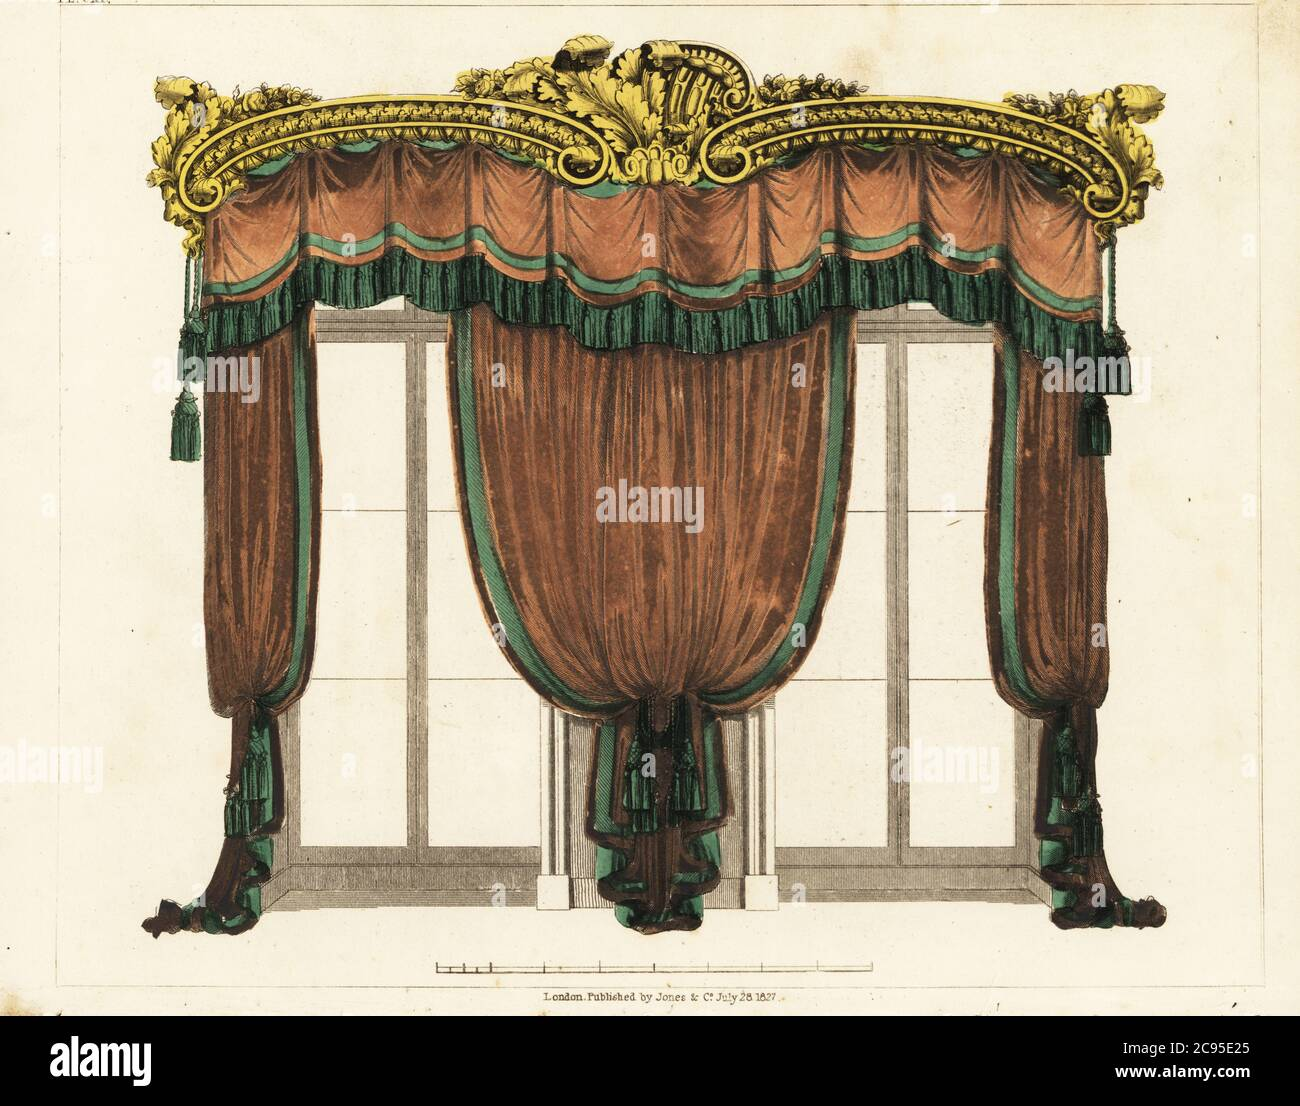 Drawing Room Window Curtains Regency Style Ornate Gilt Carving Over A Fringed Pelmet Heavy Drapes Tied With Tassels Handcoloured Copperplate Engraving From George Smith S The Cabinet Maker And Upholsterer S Guide Jones And Co London